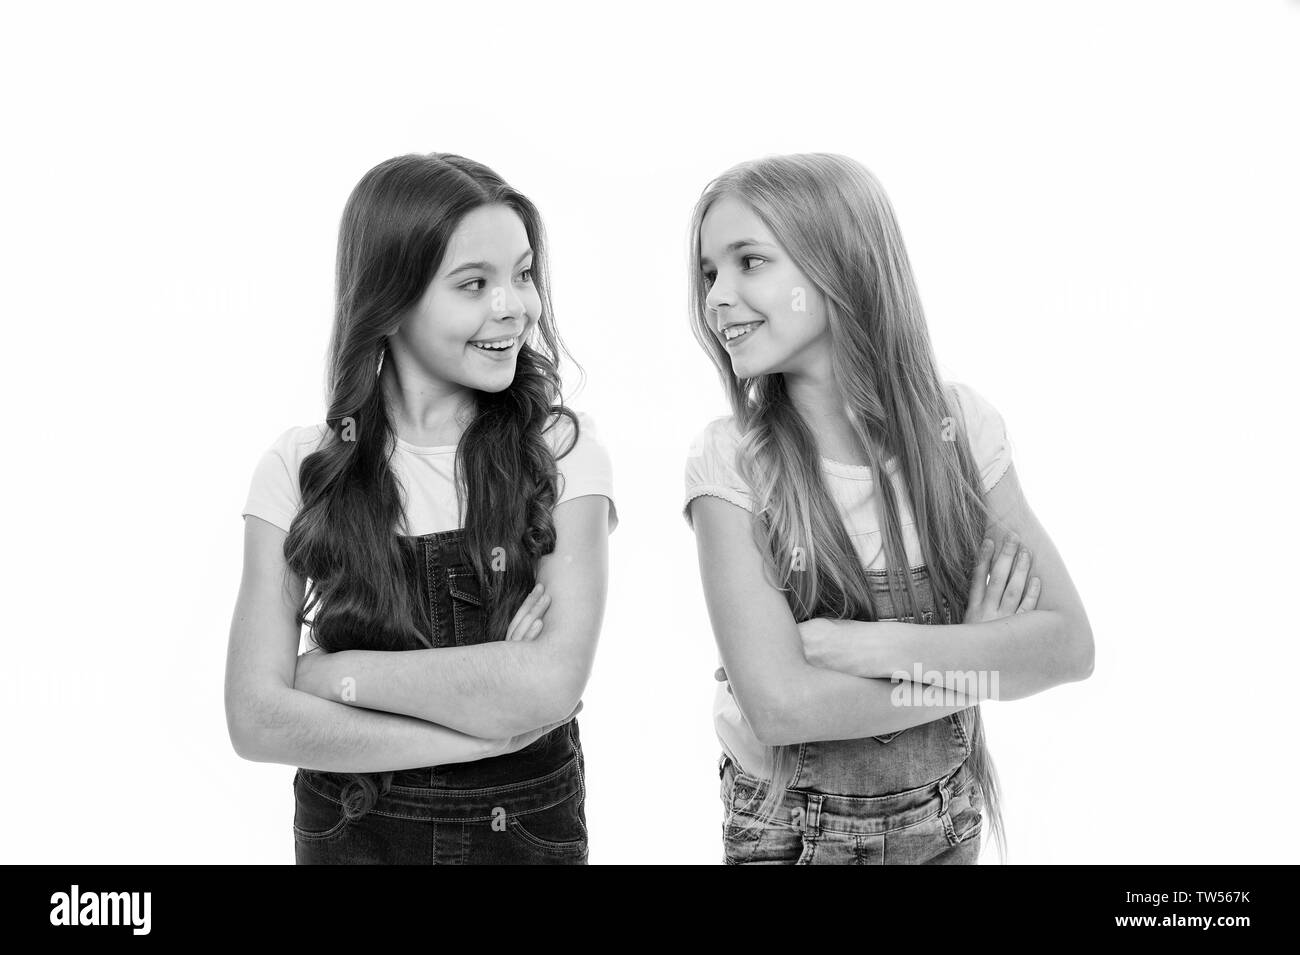 Sisterhood goals. Sisters little kids isolated white background. Sisterly relationship. Sisterhood happiness and issues. Girls confident sisters. Sist - Stock Image